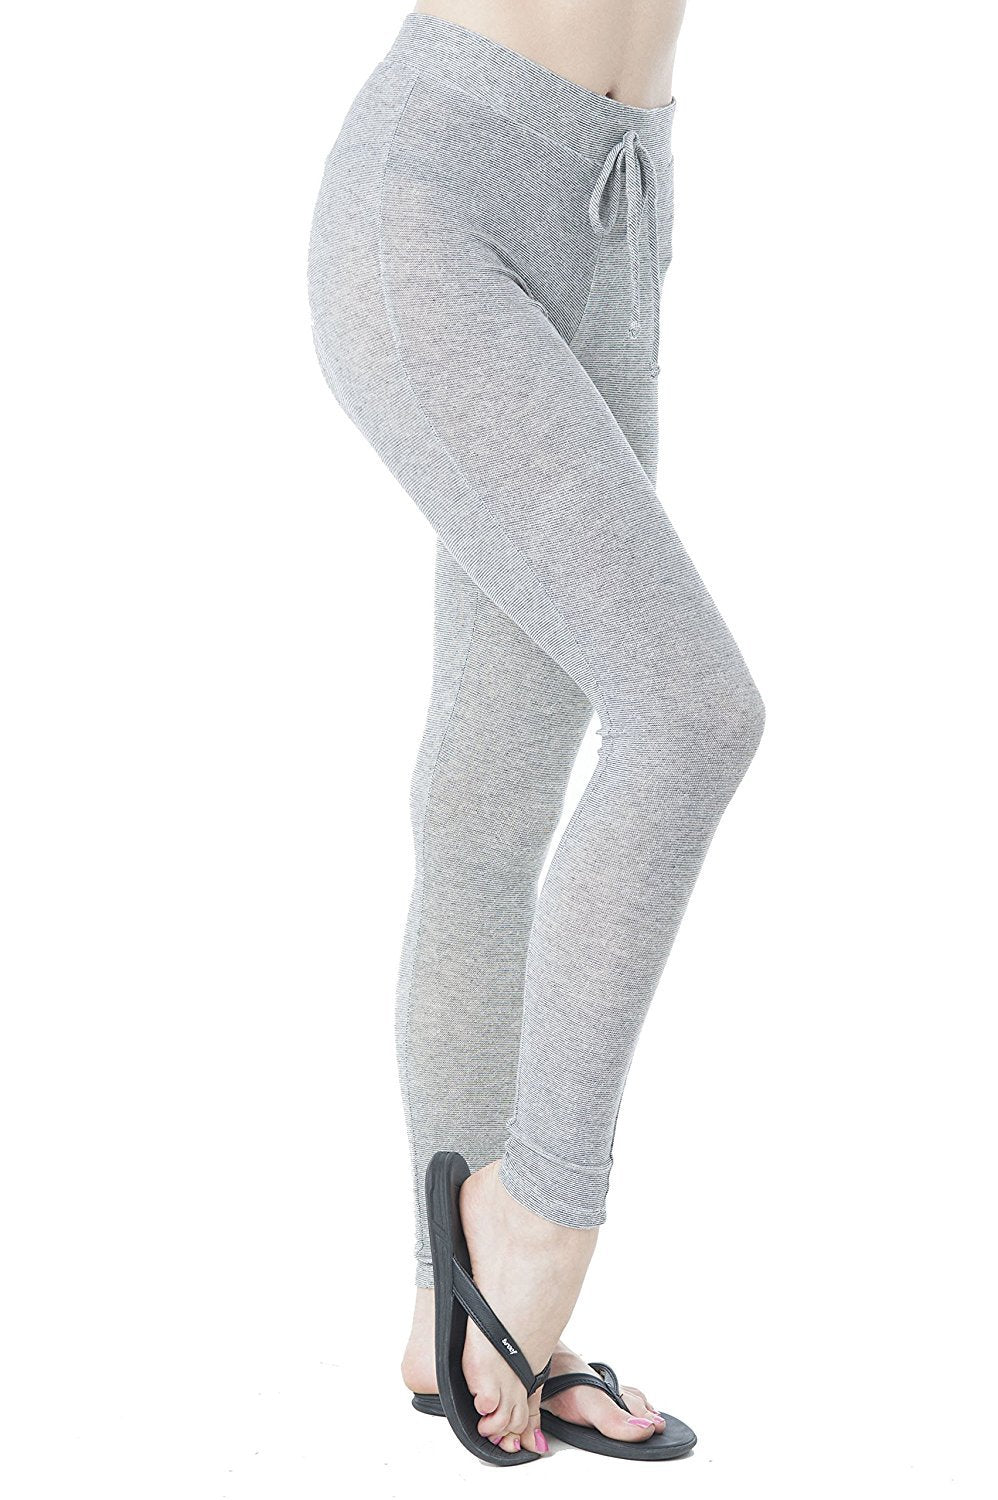 Khanomak Drawstring Spandex Stretchy Fitted Long Pants With Knee Slits Leggings